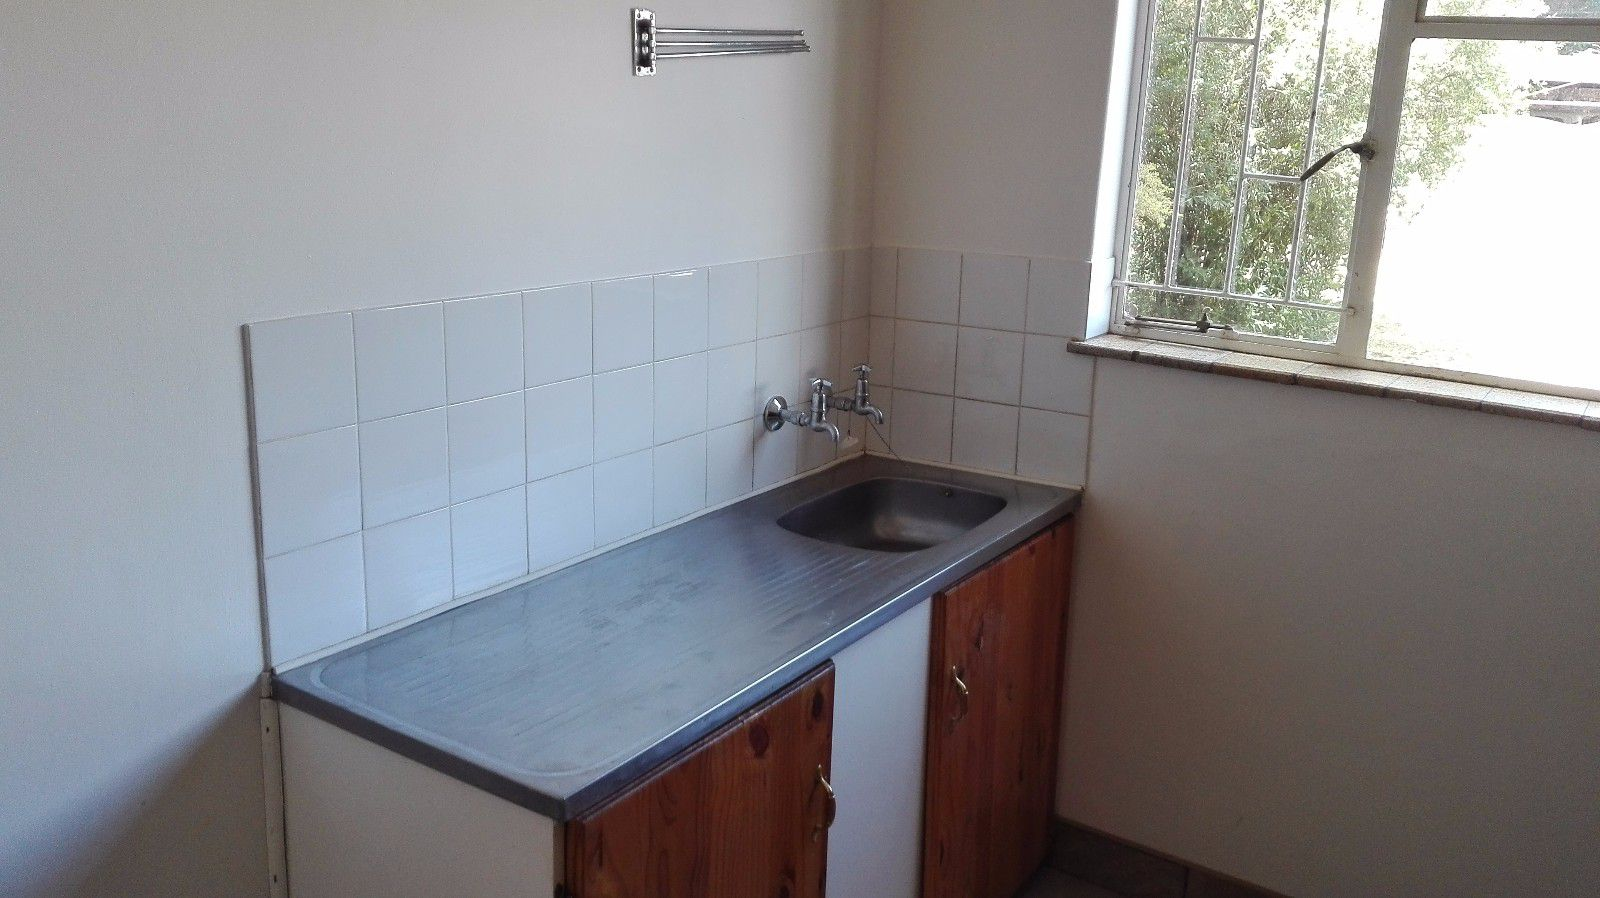 Potchefstroom Central property for sale. Ref No: 13398906. Picture no 8